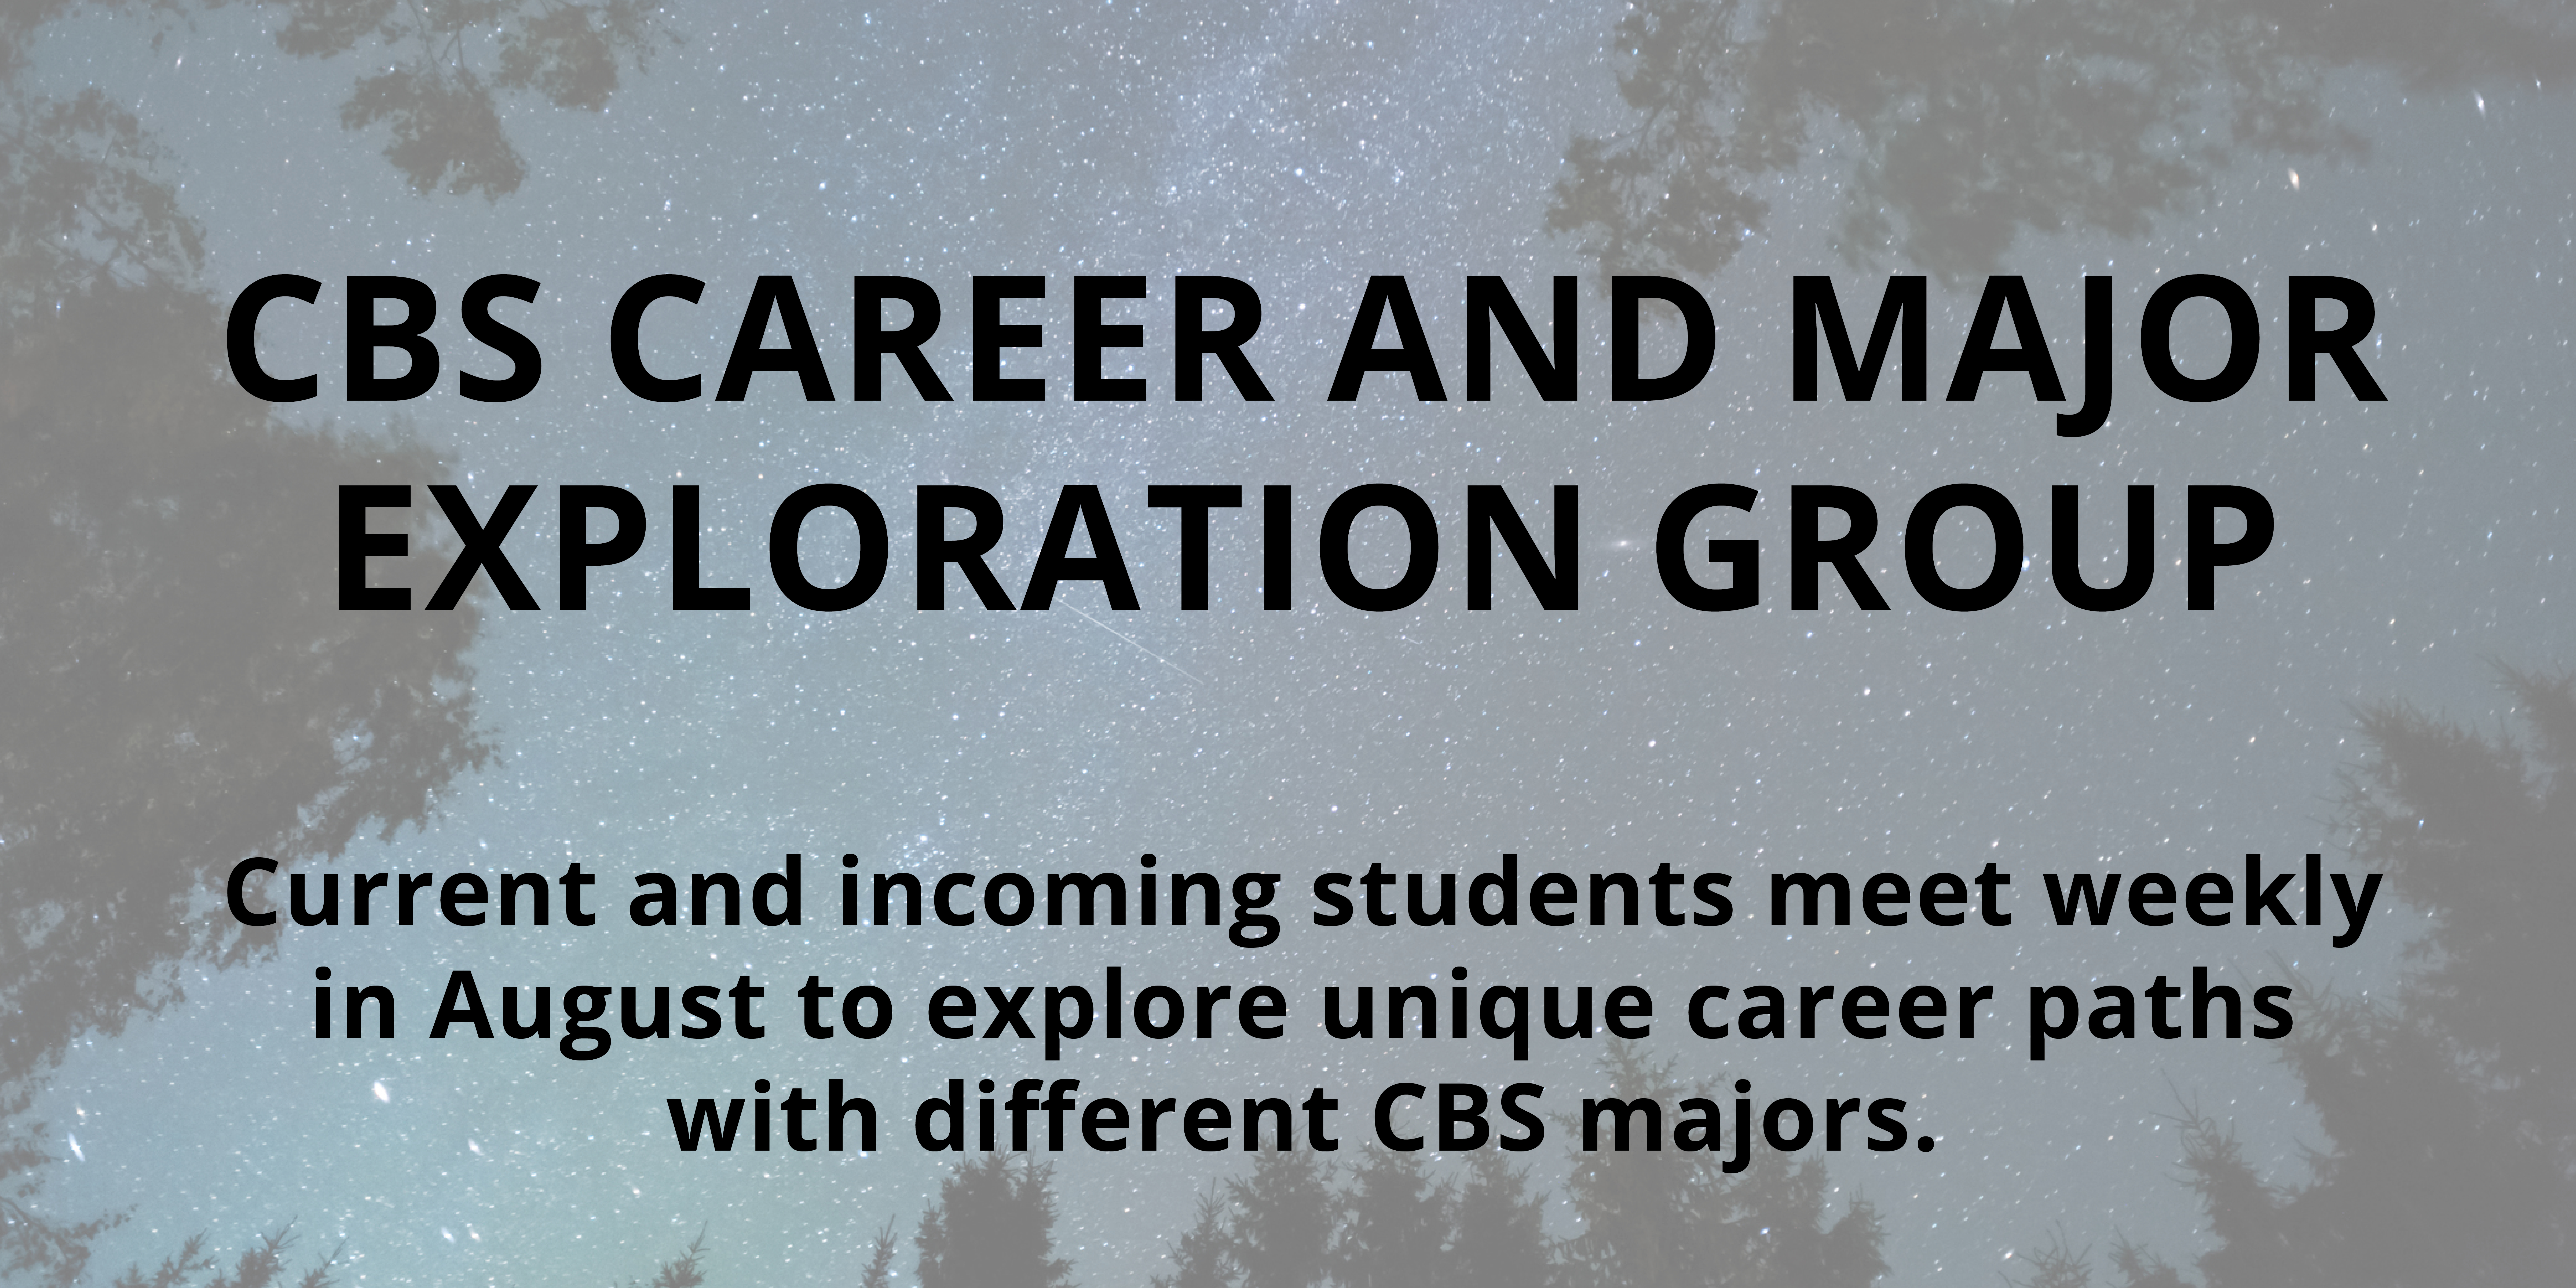 CBS CAREER AND MAJOR  EXPLORATION GROUP / Current and incoming students meet weekly  in August to explore unique career paths  with different CBS majors.